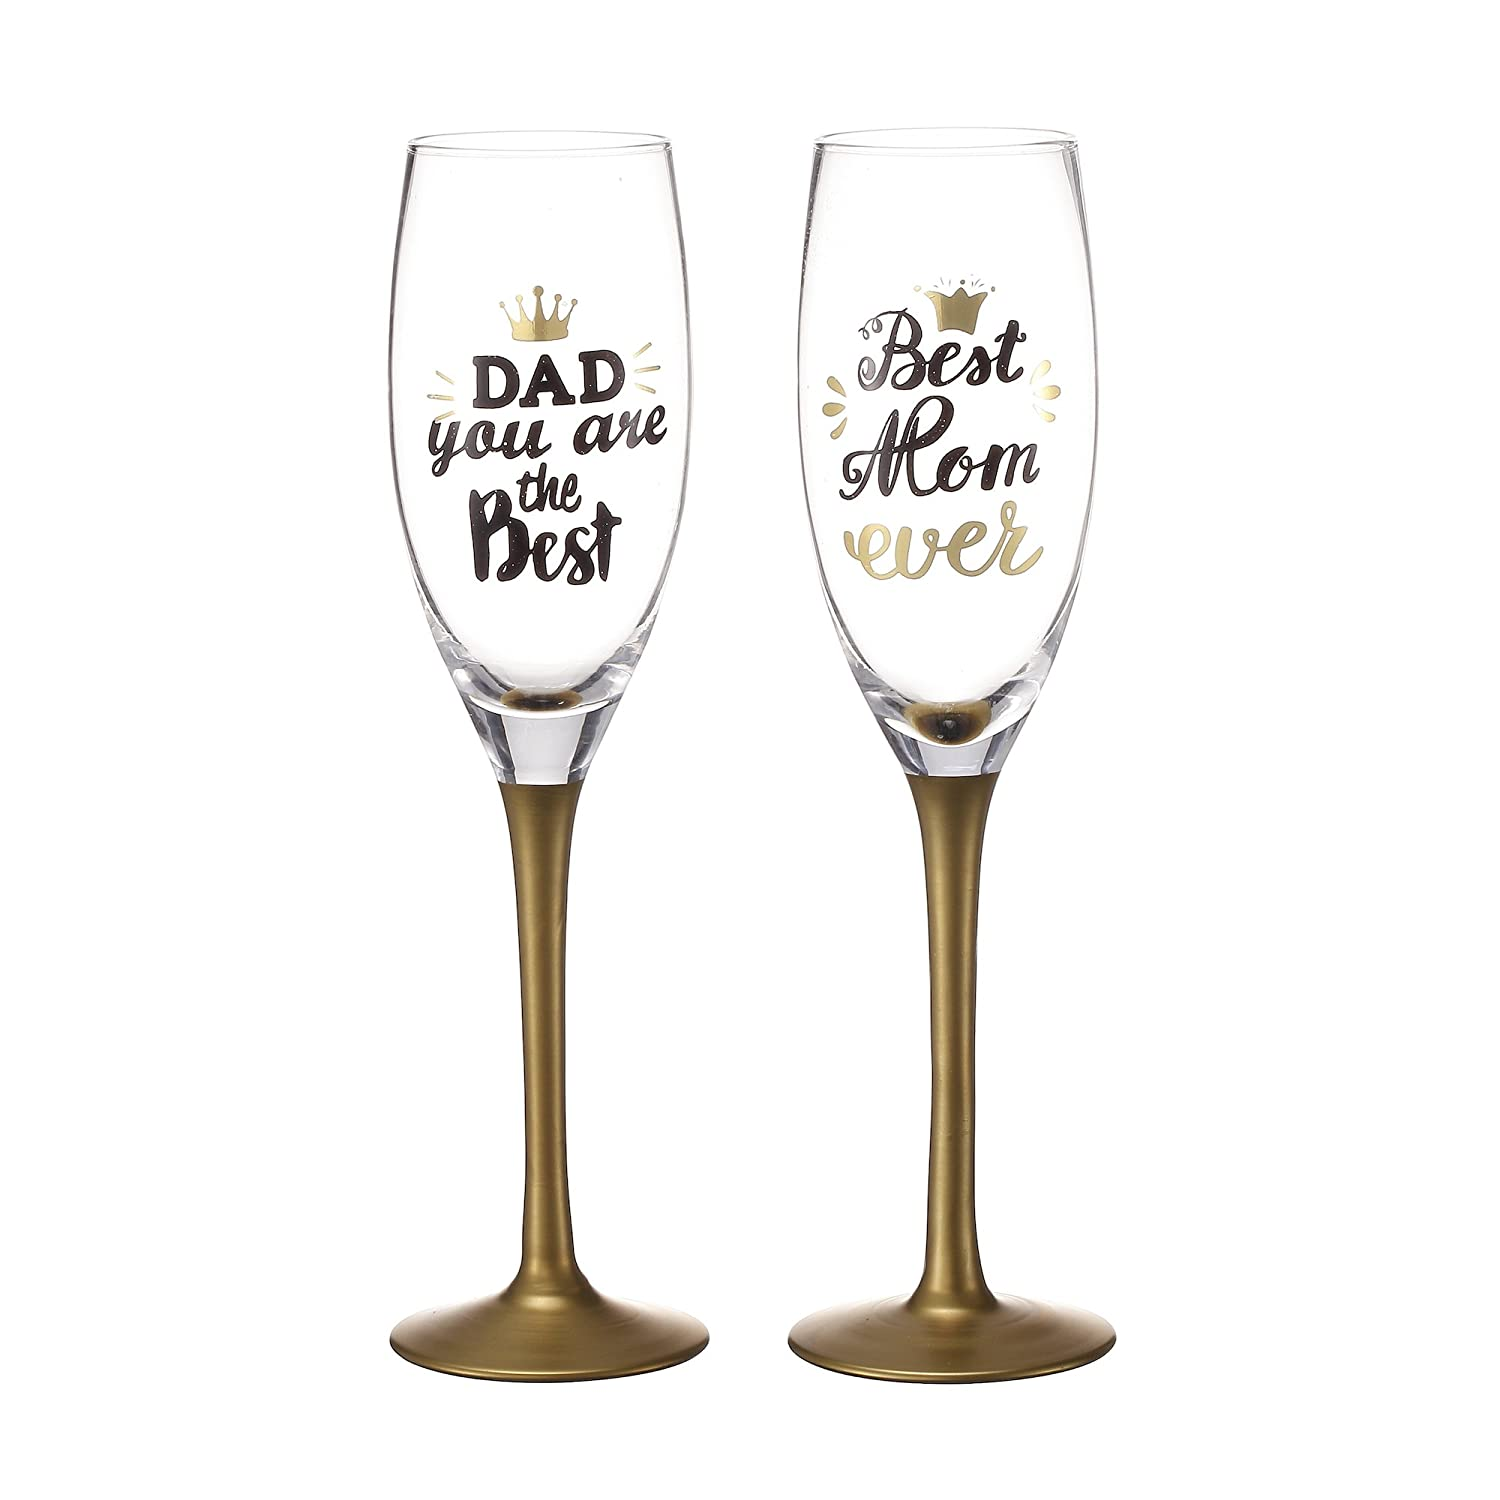 V-More V-More Wedding Toast Champagne Flute Set Wedding Toasting Glasses with Hand Painted Gentleman & Lady Decal for Wedding Special Party Home Decor Gift 8 Oz (Set of 2) V-More® Toasting Flutes